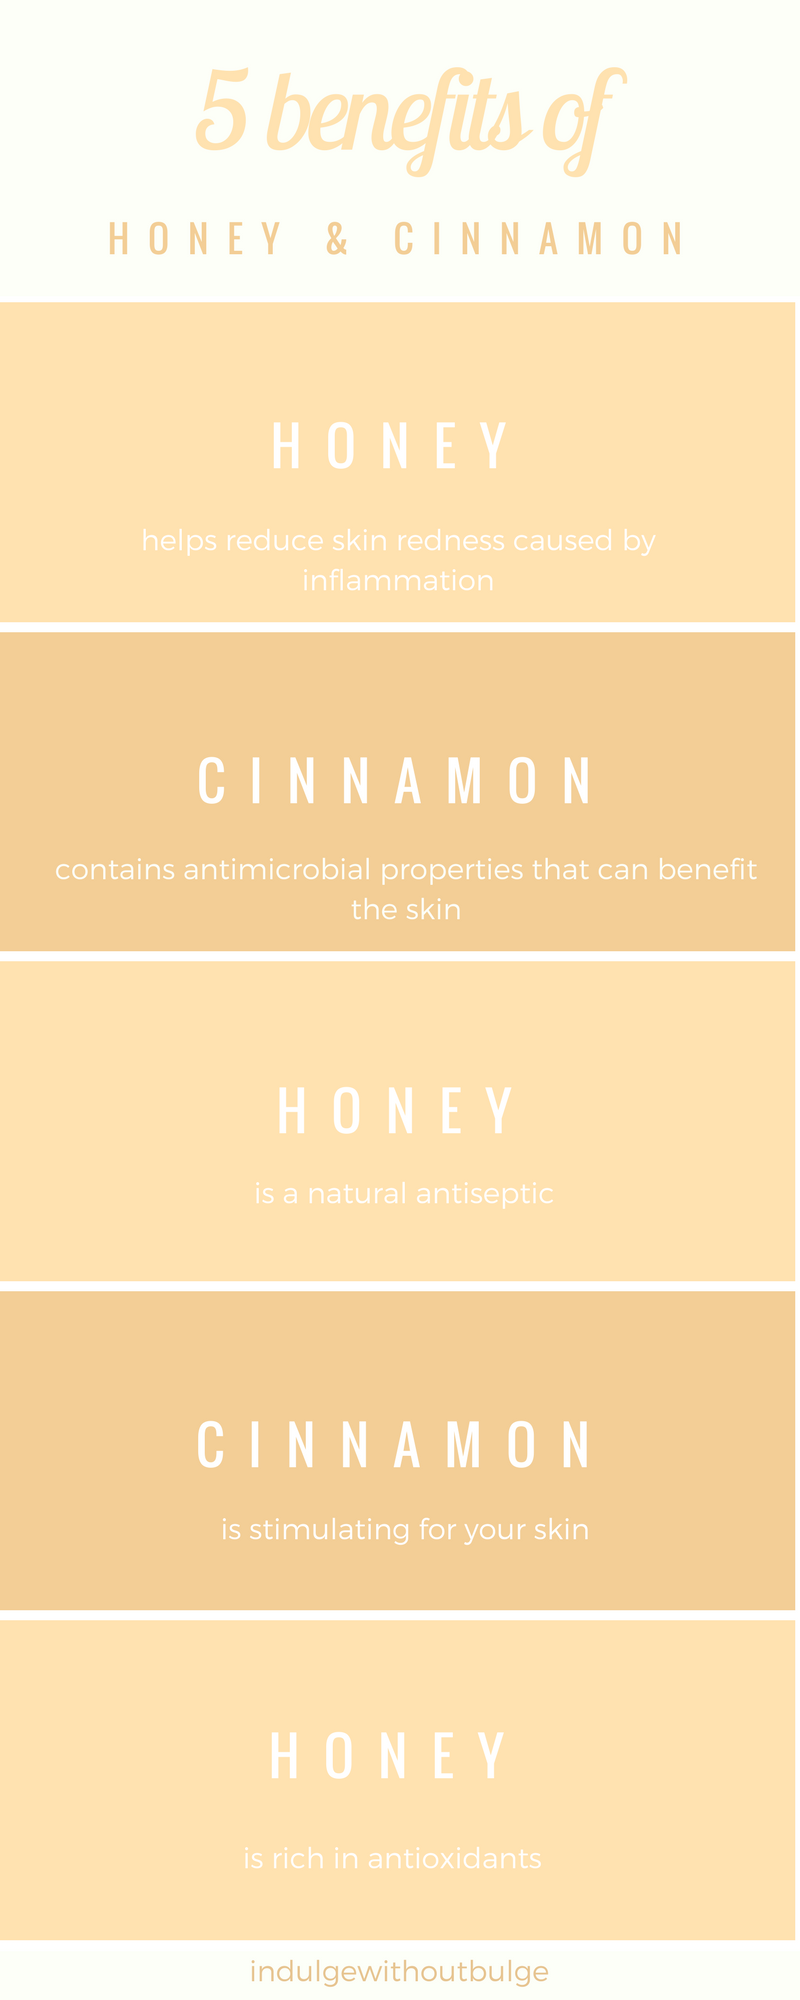 5 benefits of cinnamon and honey